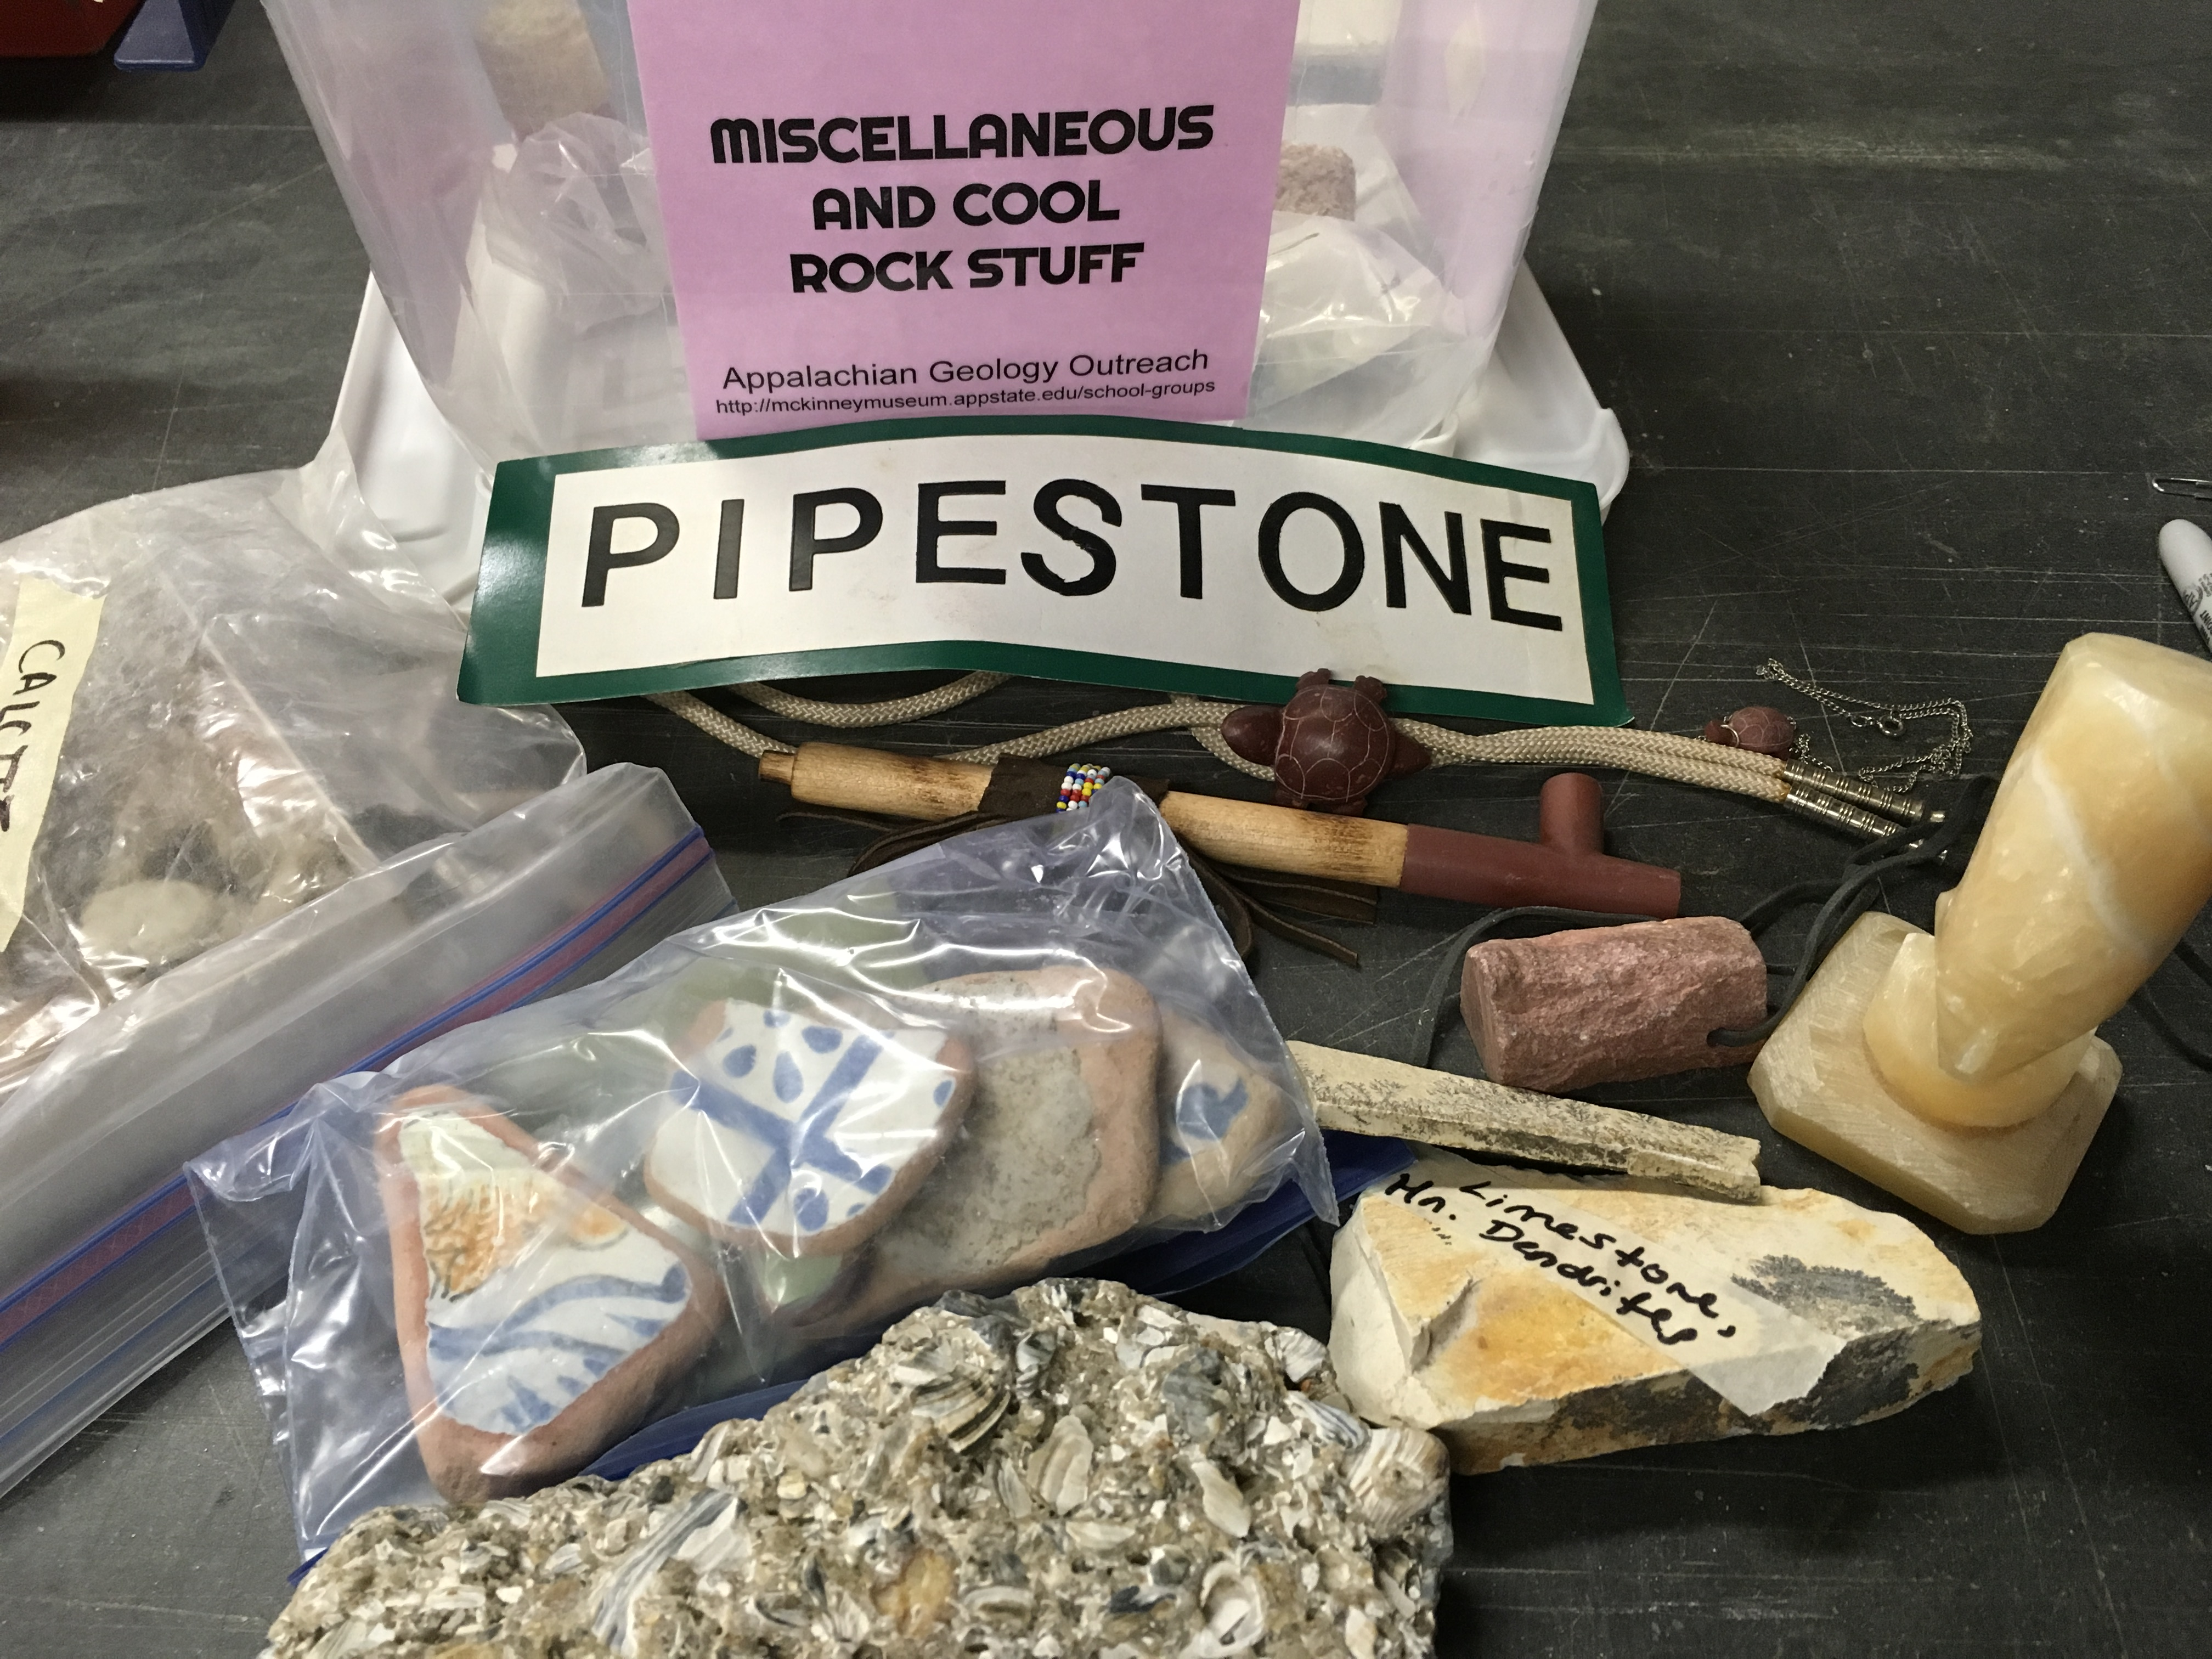 Miscellaneous and Cool Rock Stuff